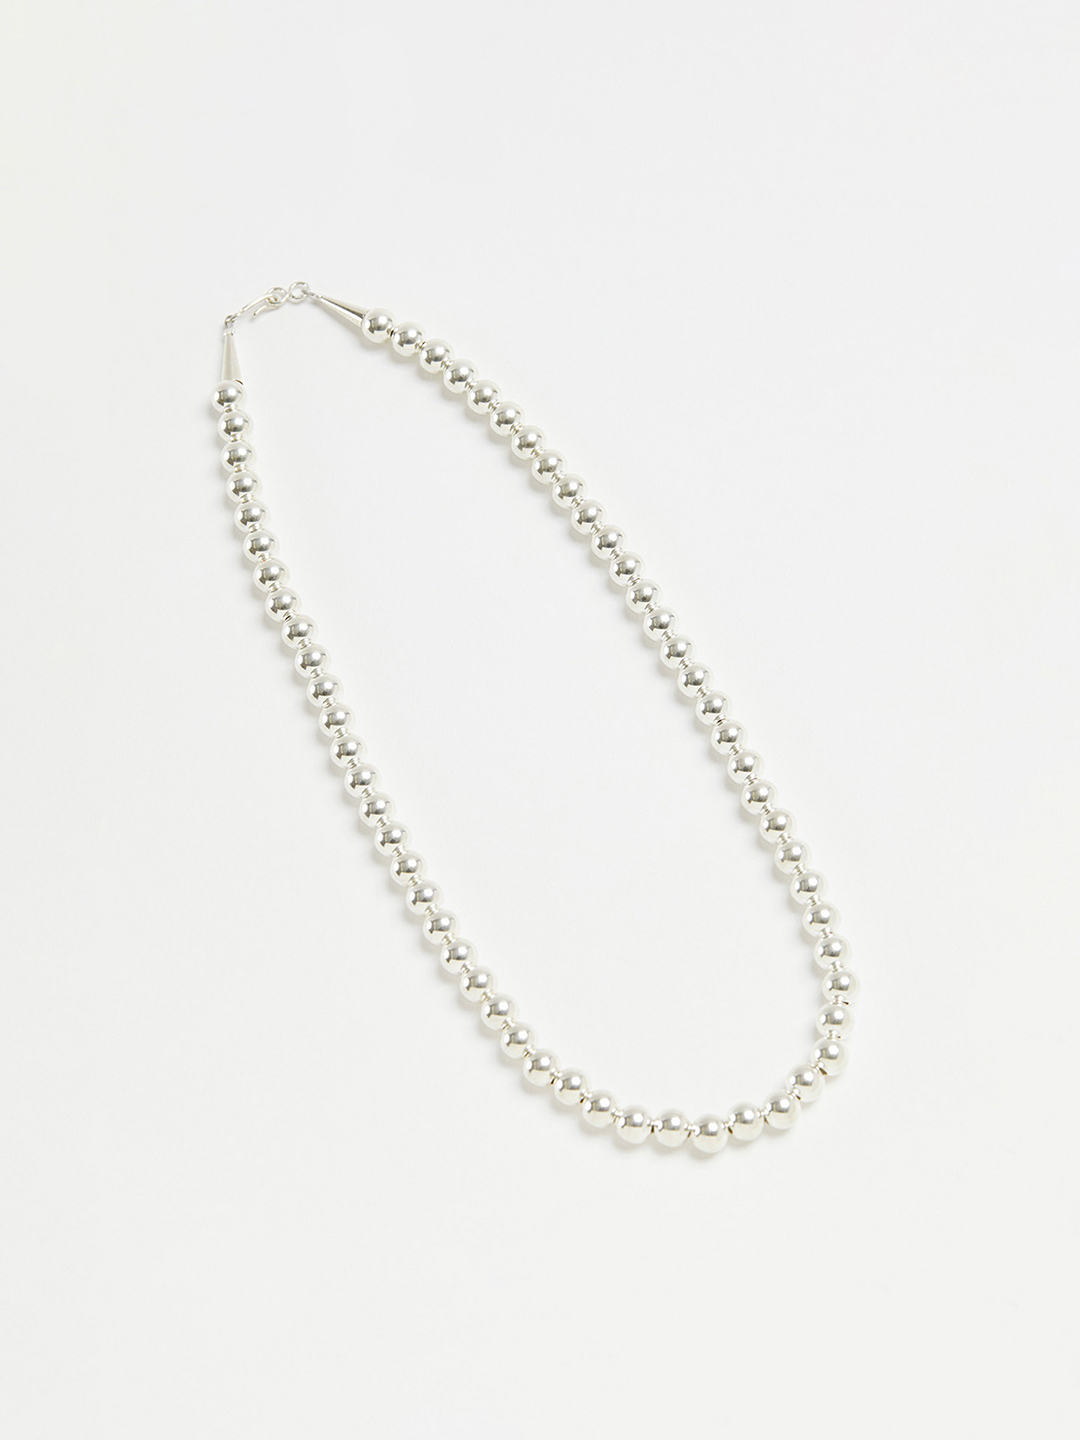 8mm Ball Chain Necklace - 50cm Silver